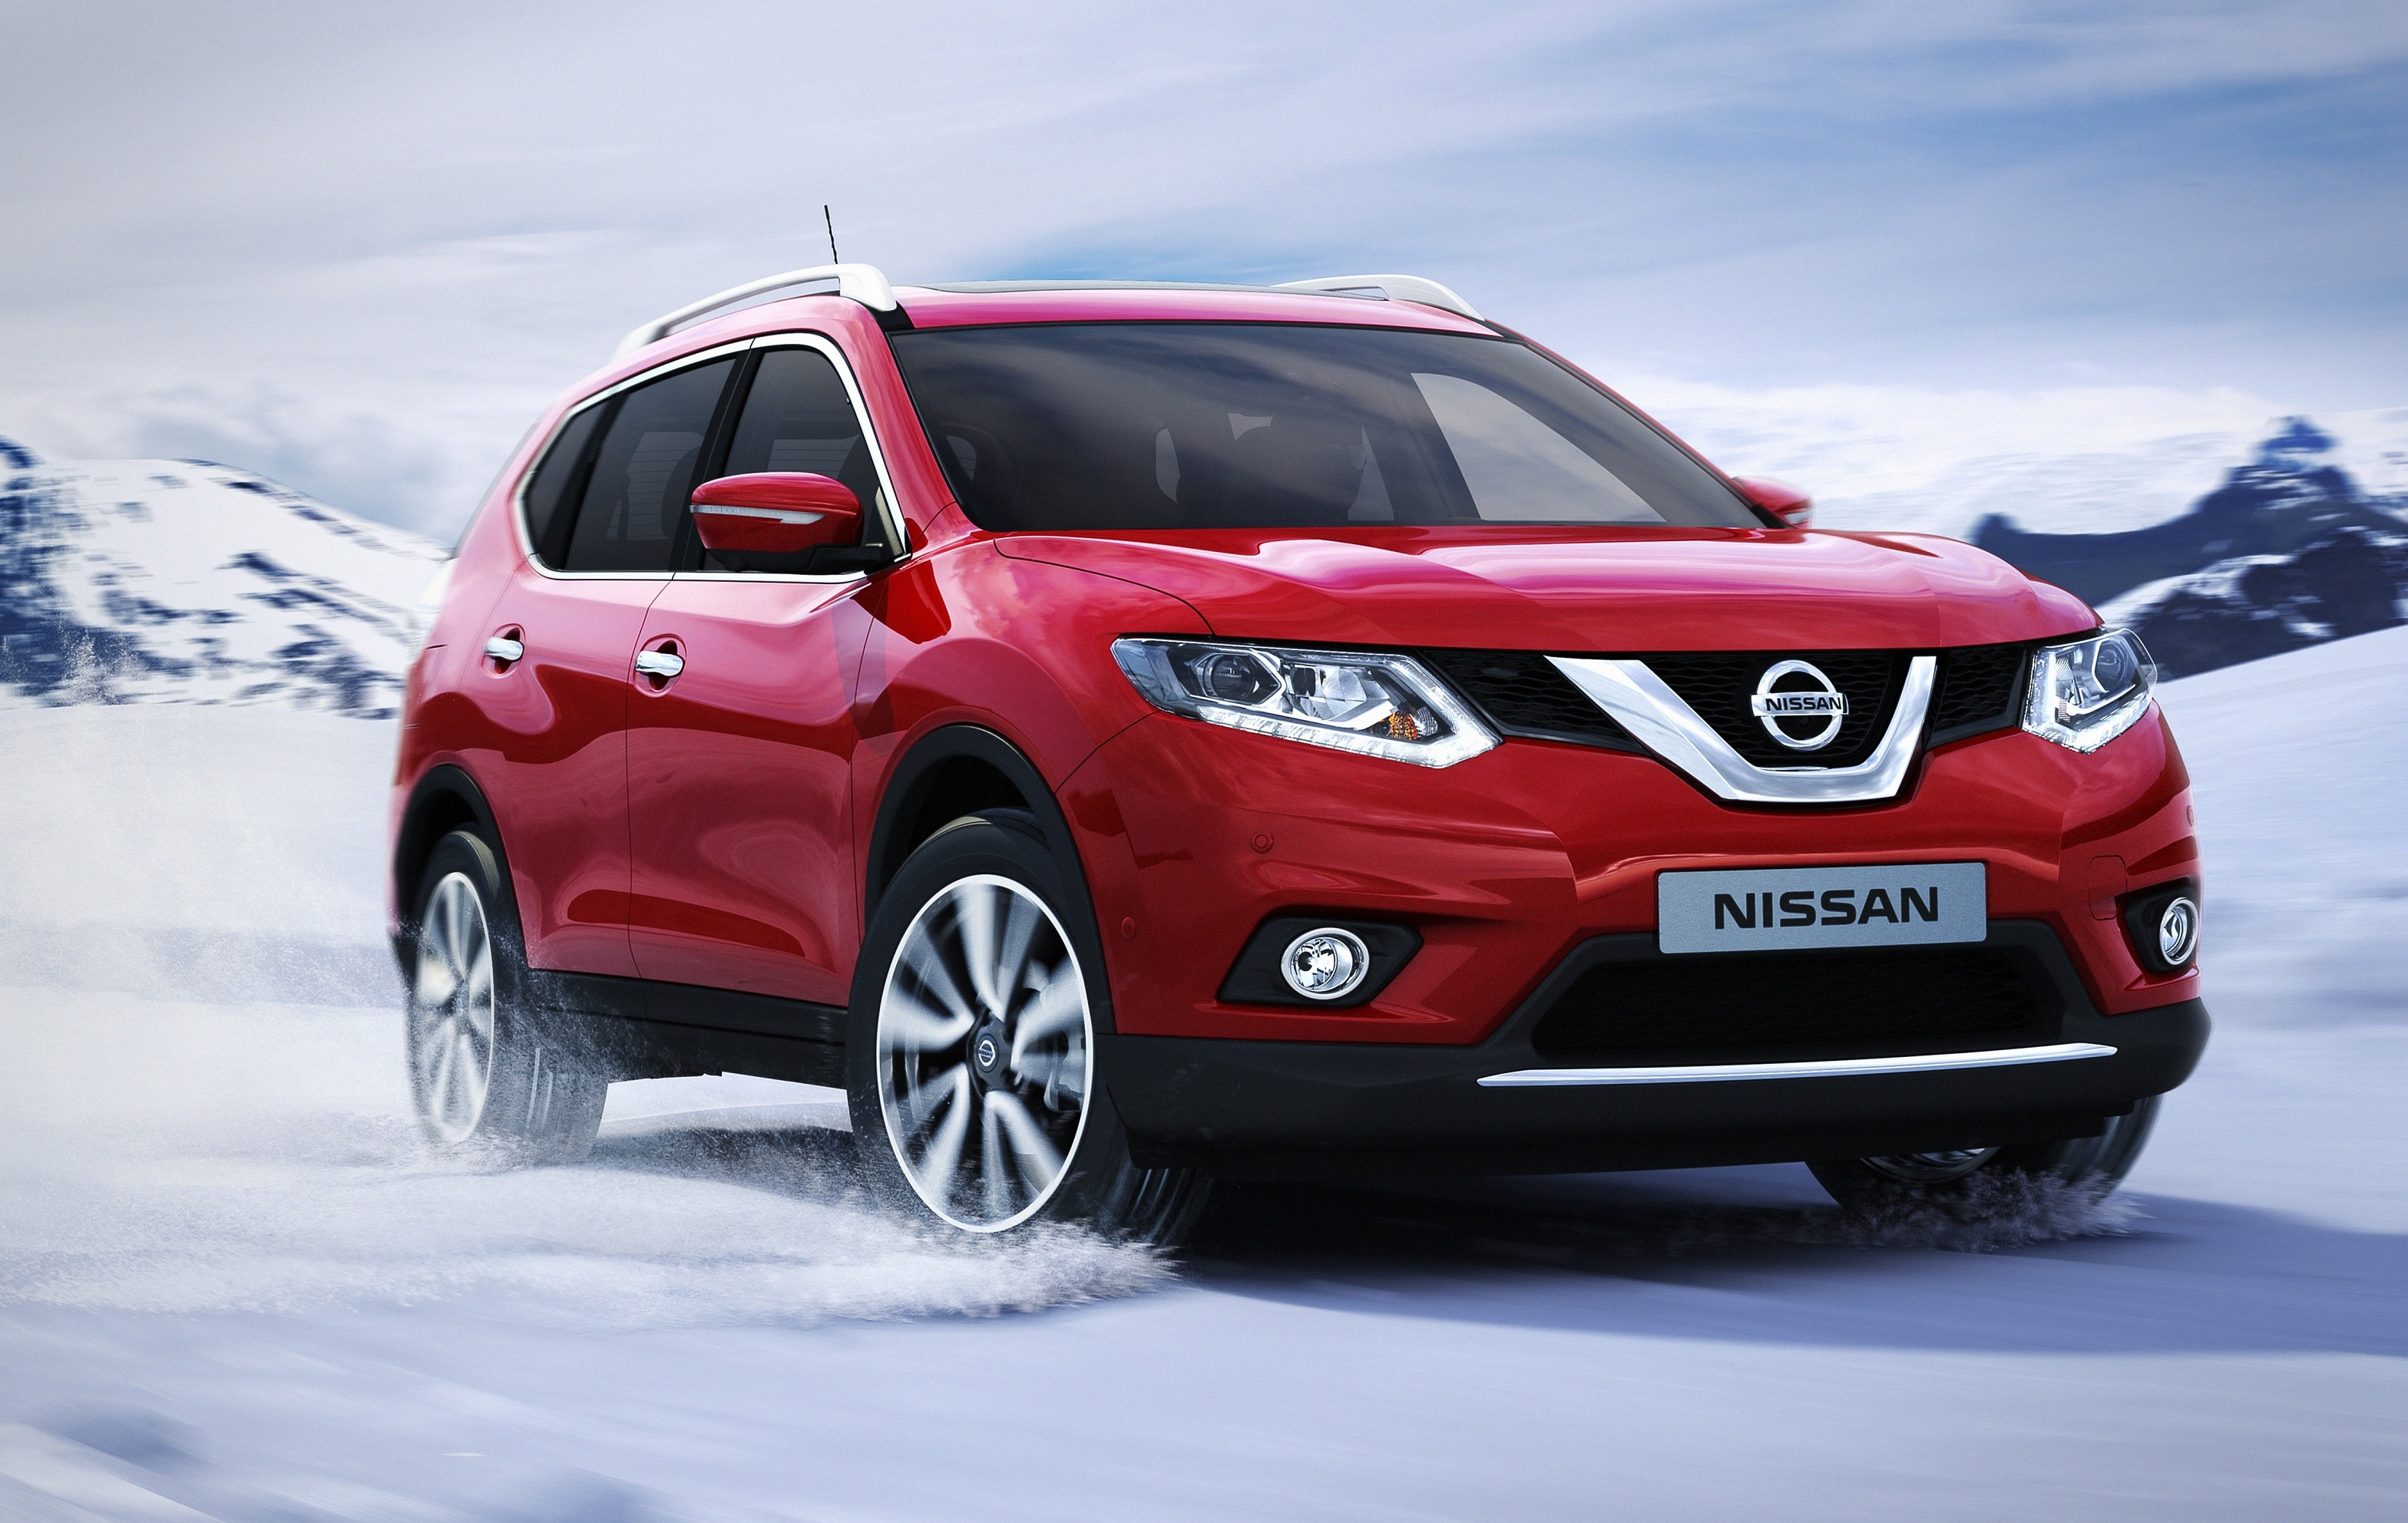 2015 nissan x trail diesel. Black Bedroom Furniture Sets. Home Design Ideas